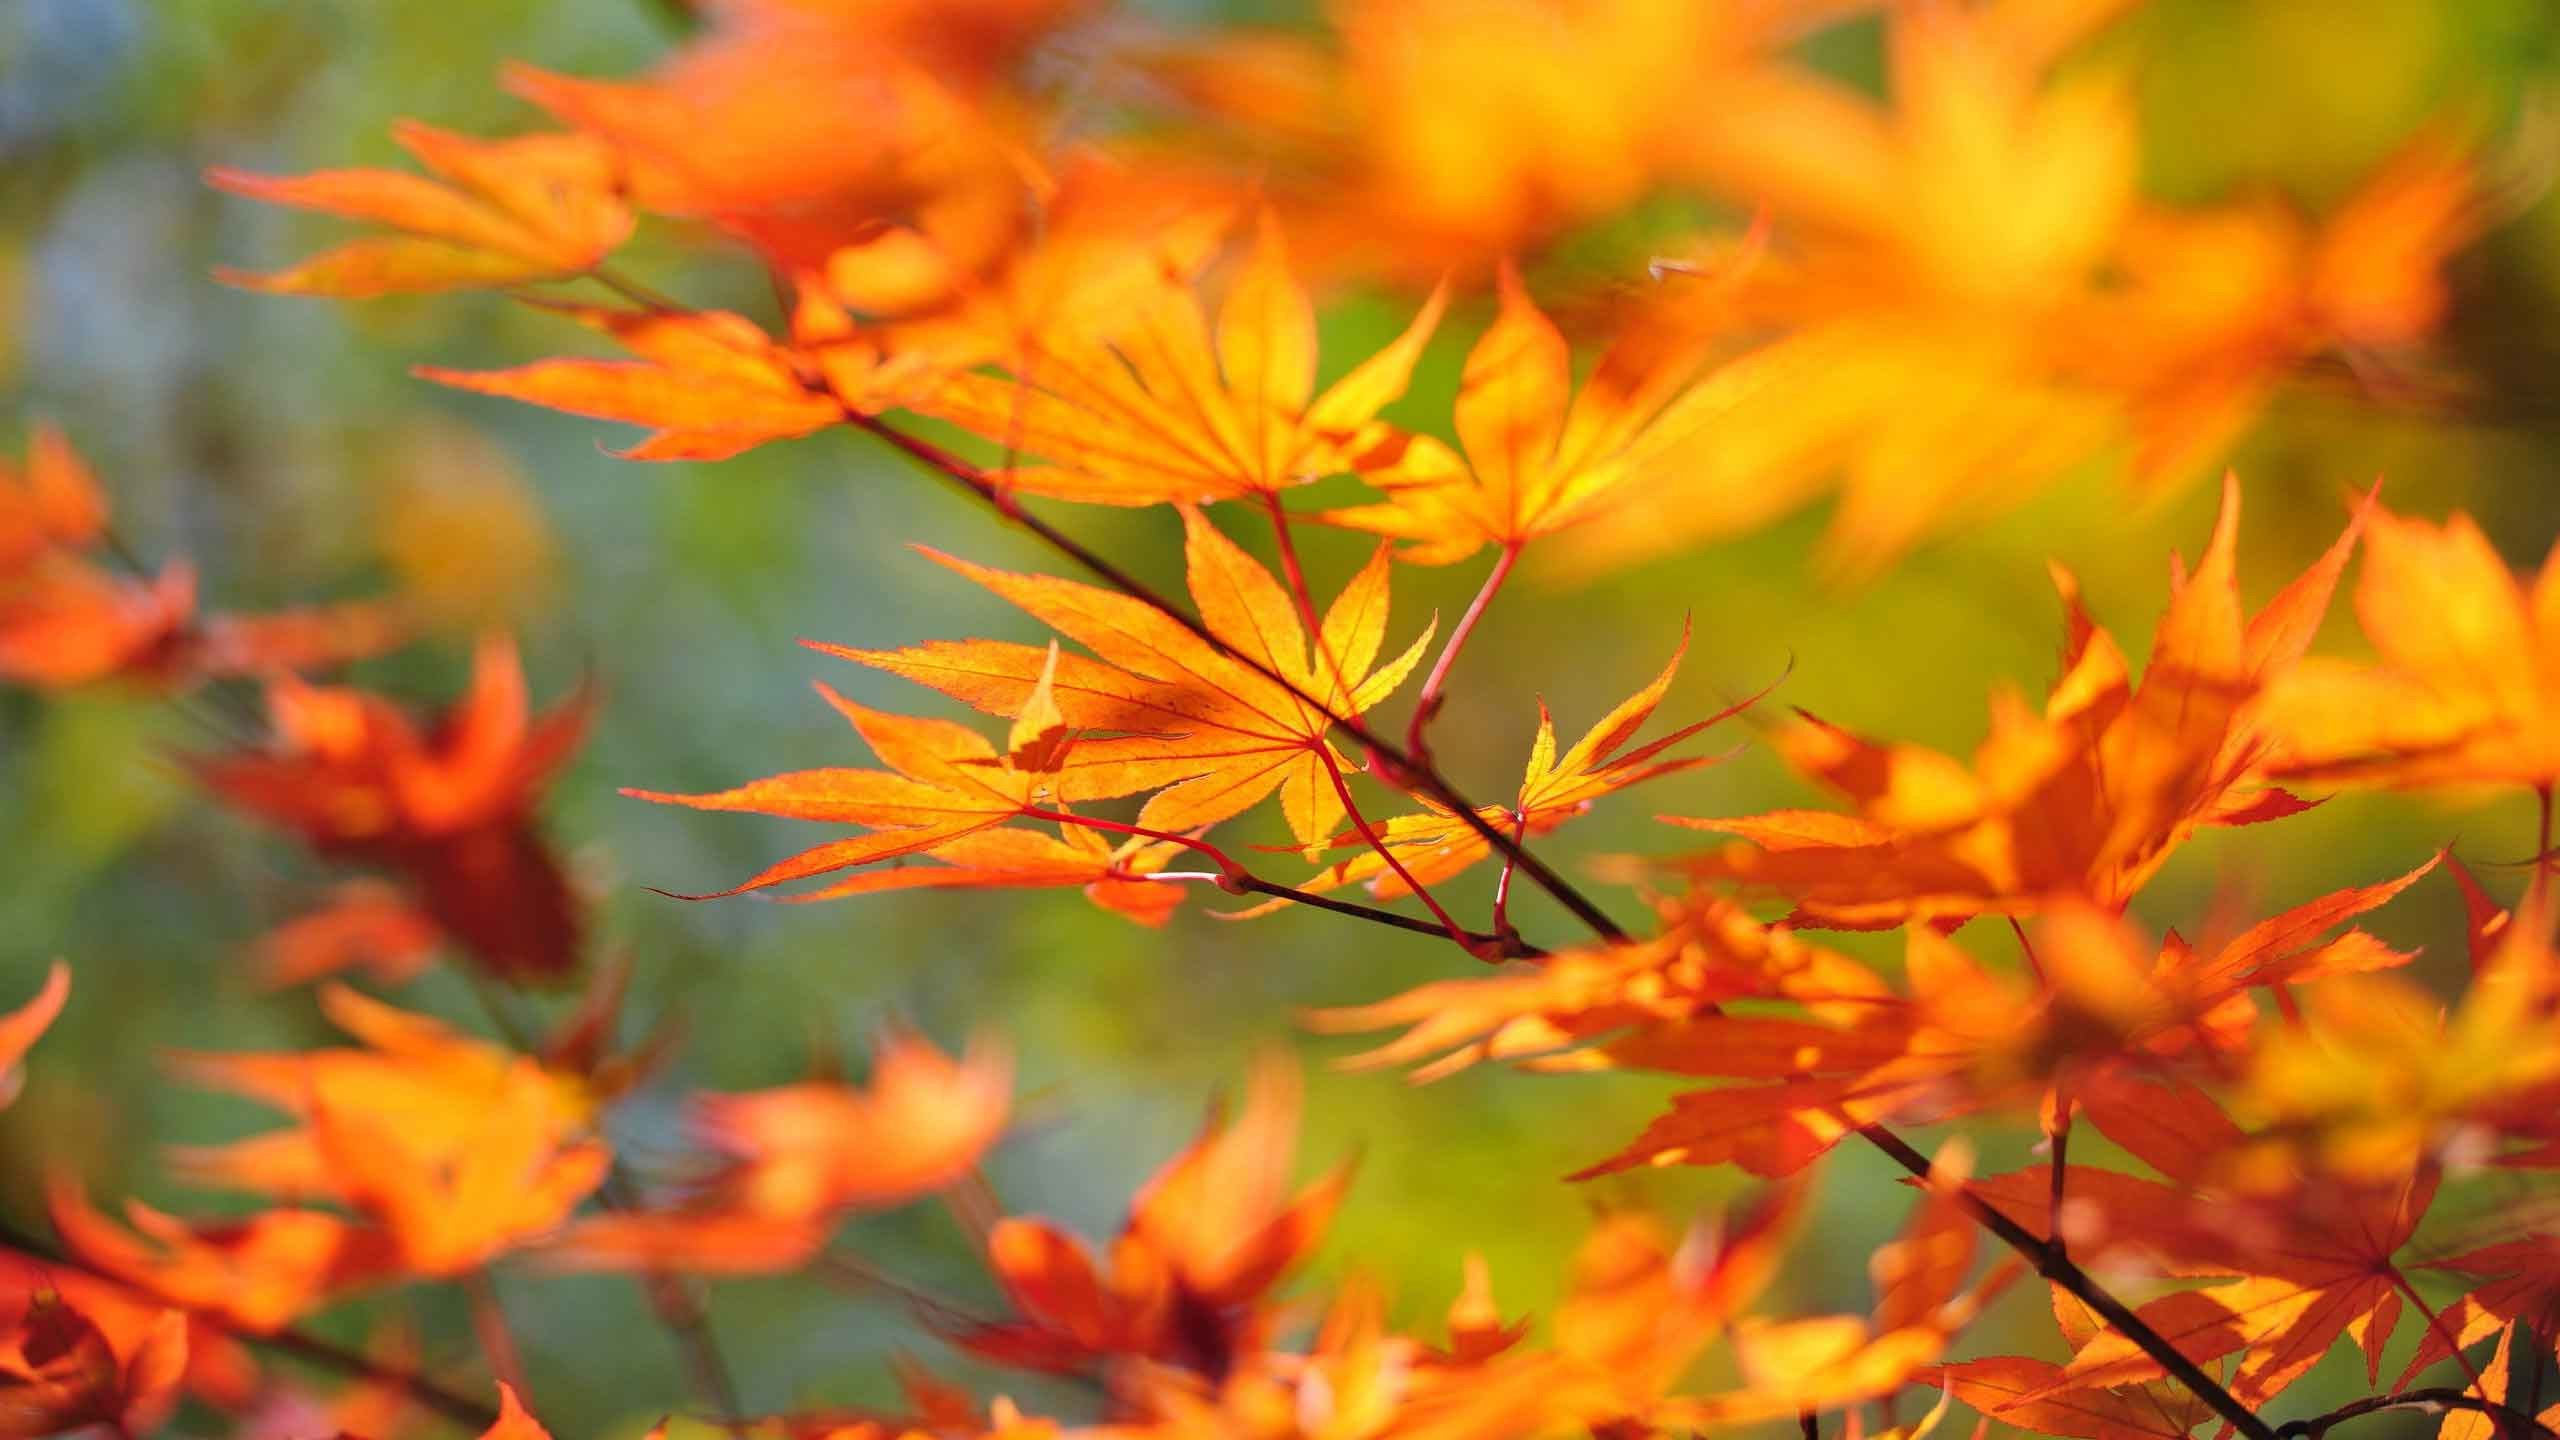 Autumn Leaf Wallpaper (68+ Images